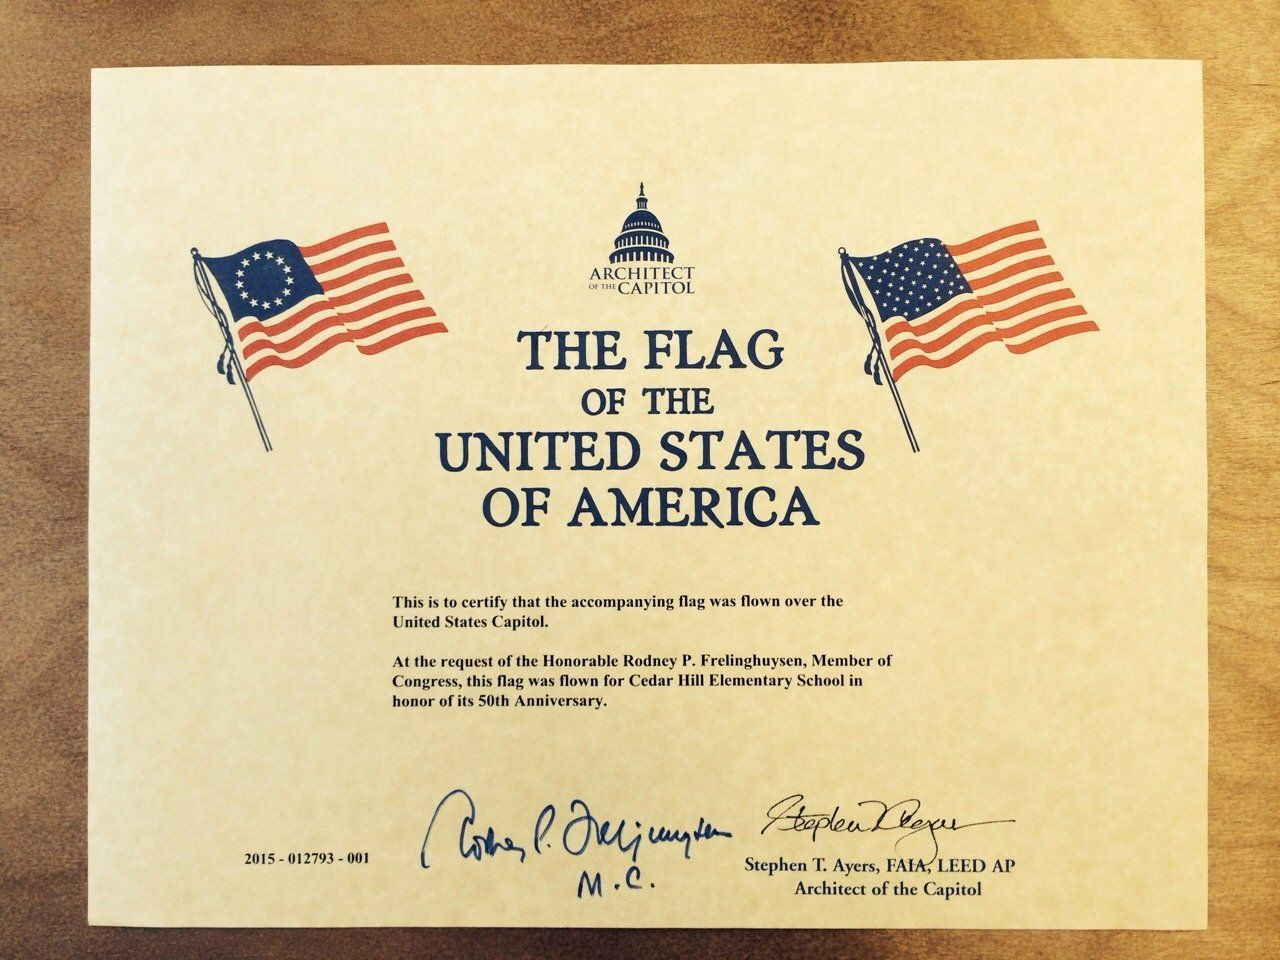 Flag Flown Certificate Template New Flag Flown Over Us Capitol In Honor Of Cedar Hill S 50th In 2020 Certificate Templates Templates Award Template